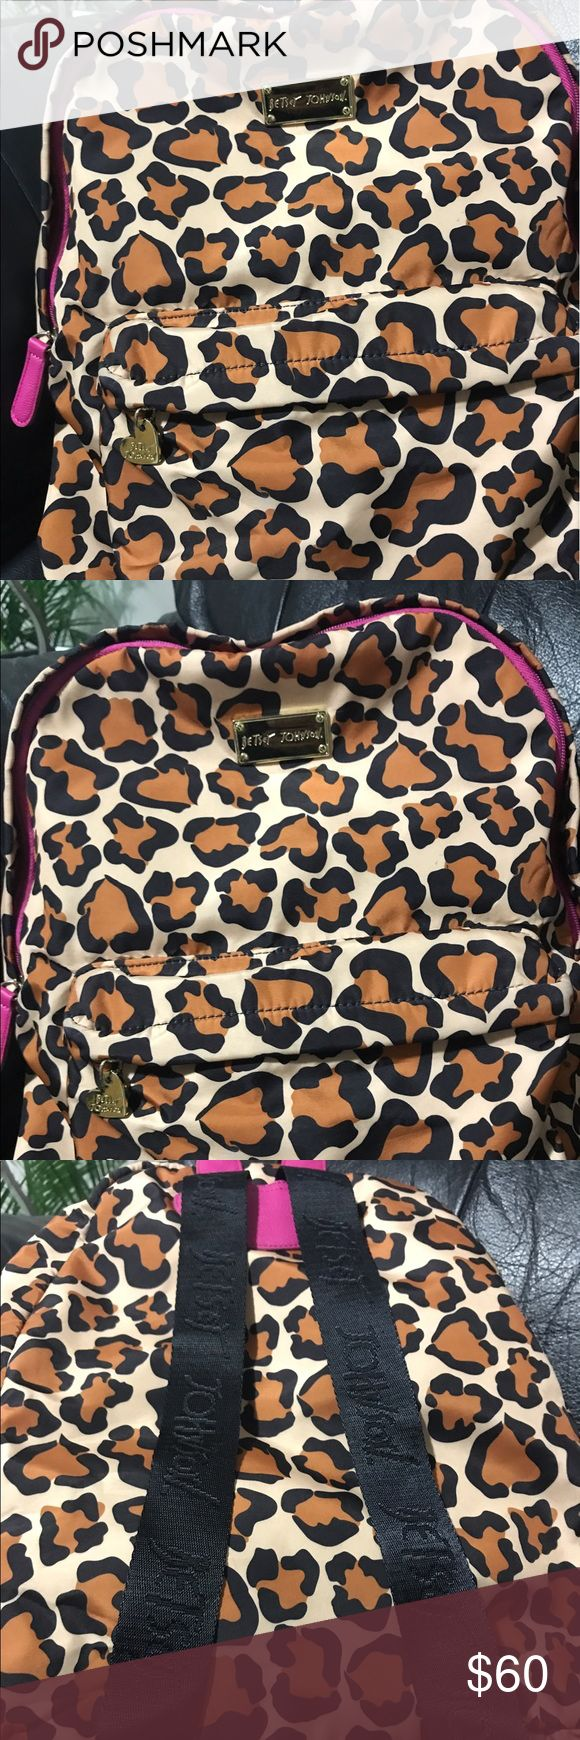 Betsey Johnson animal print backpack l Like new condition. Betsey Johnson backpack. Betsey Johnson Bags Backpacks